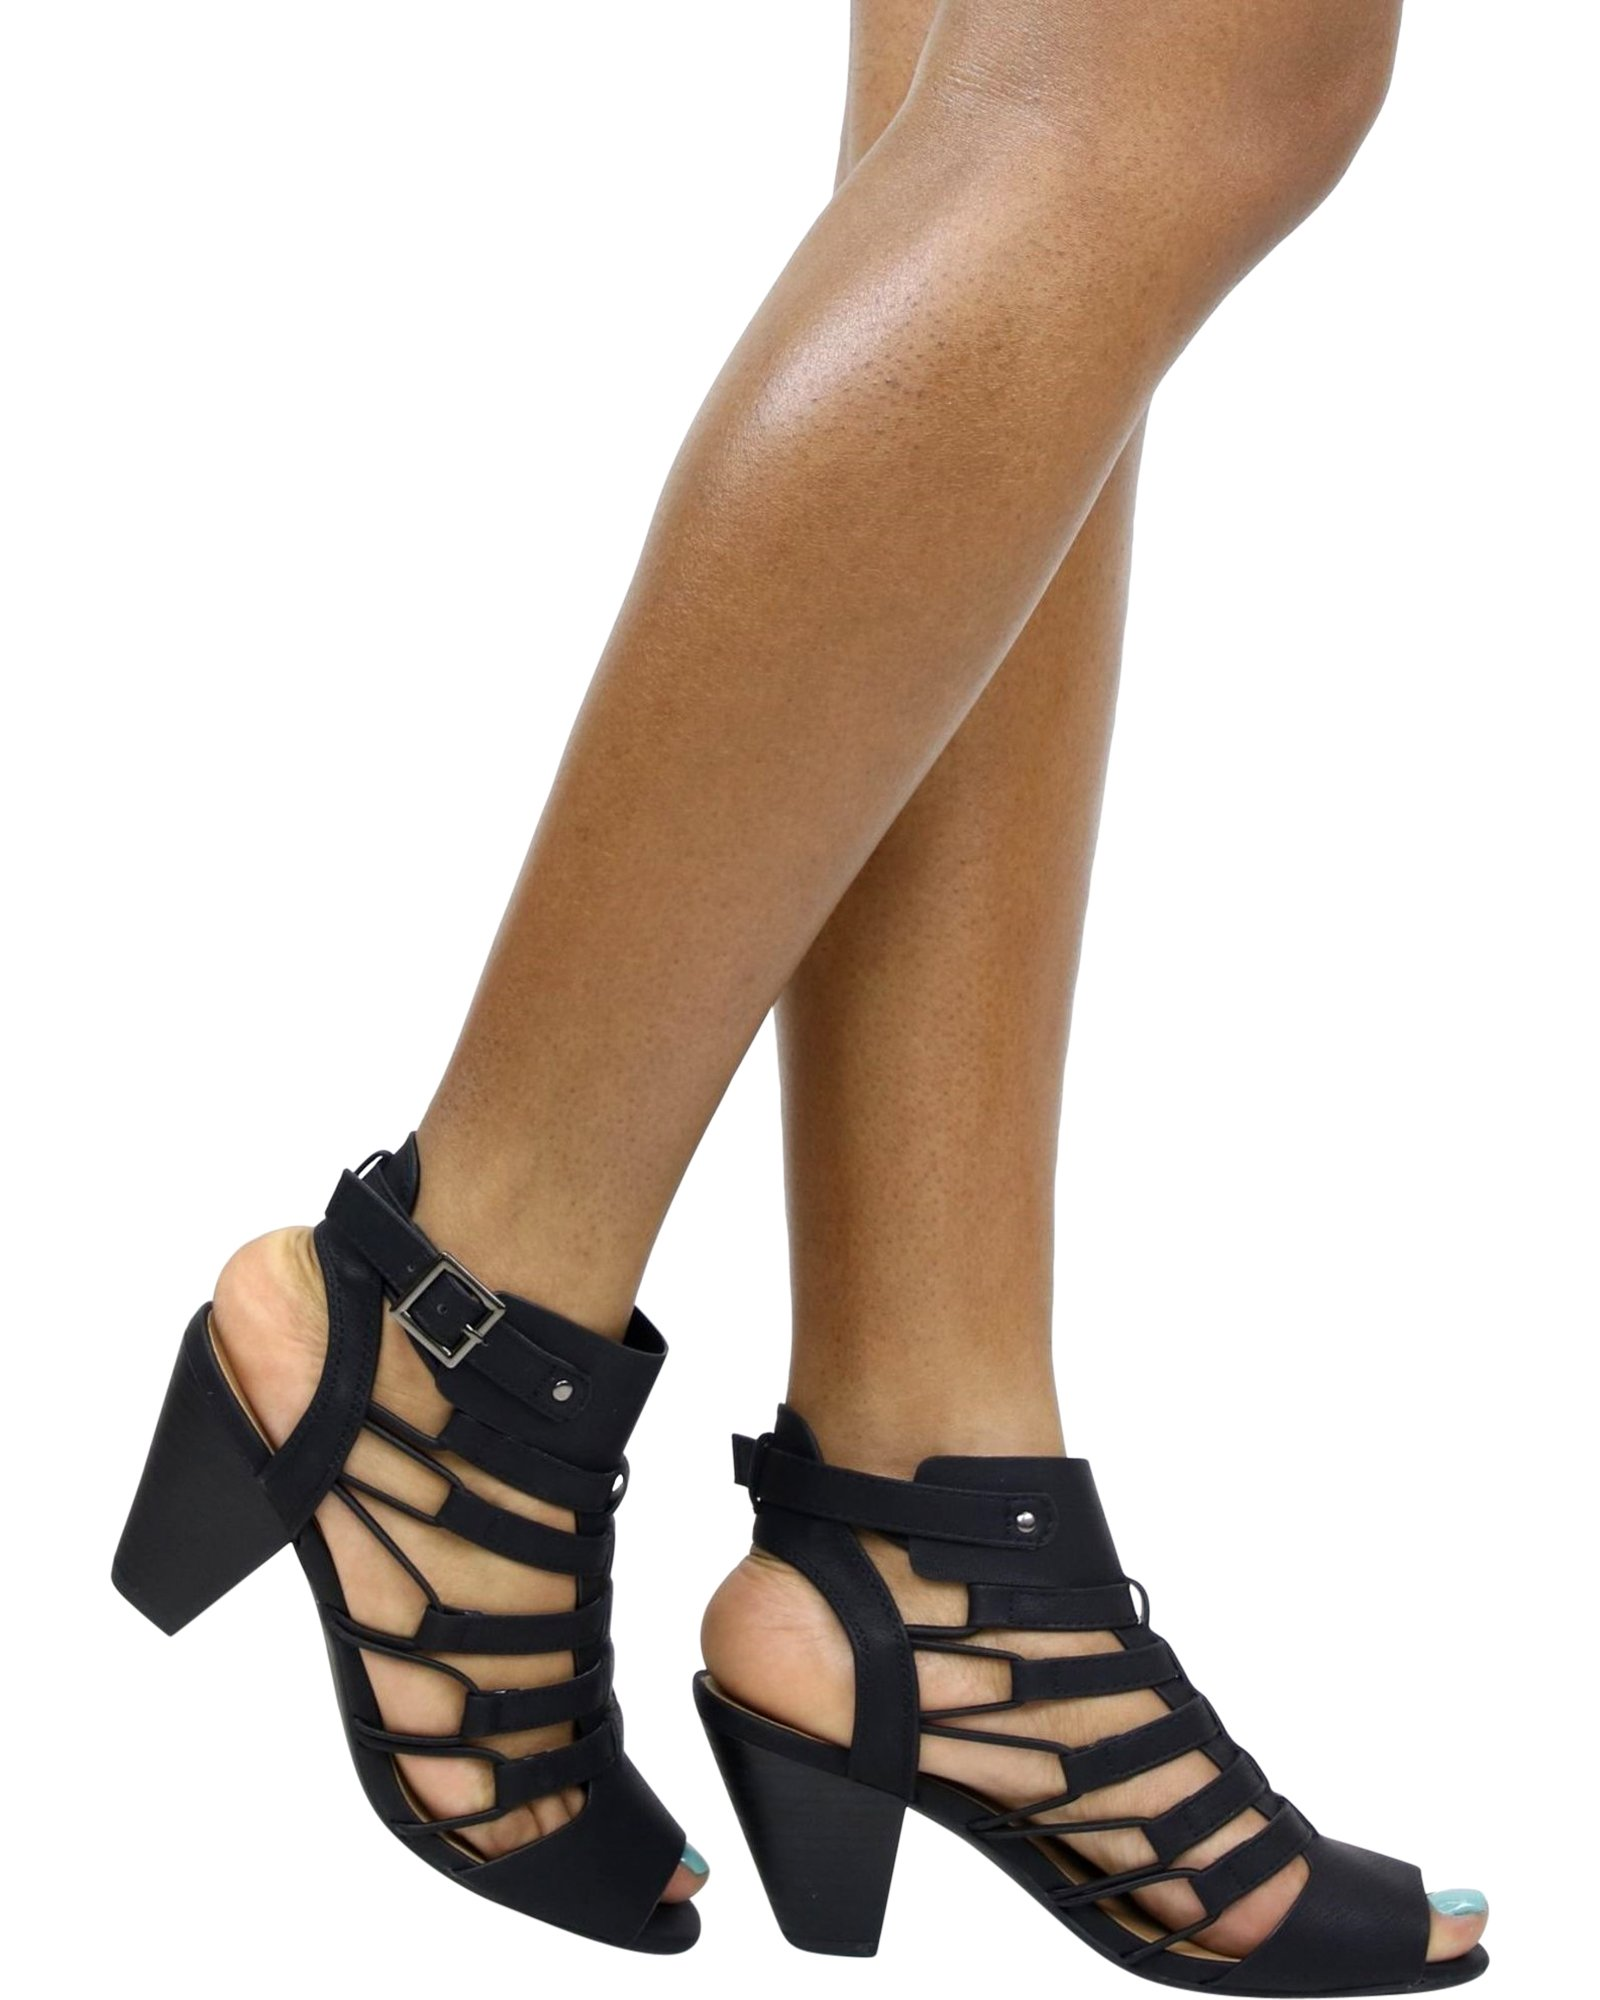 City Classified Women's Casual Styl Awesome Gladiator Strappy Chunky Block Heel Synthetic Lightly Padded Insole Sandals (8.5, Black)